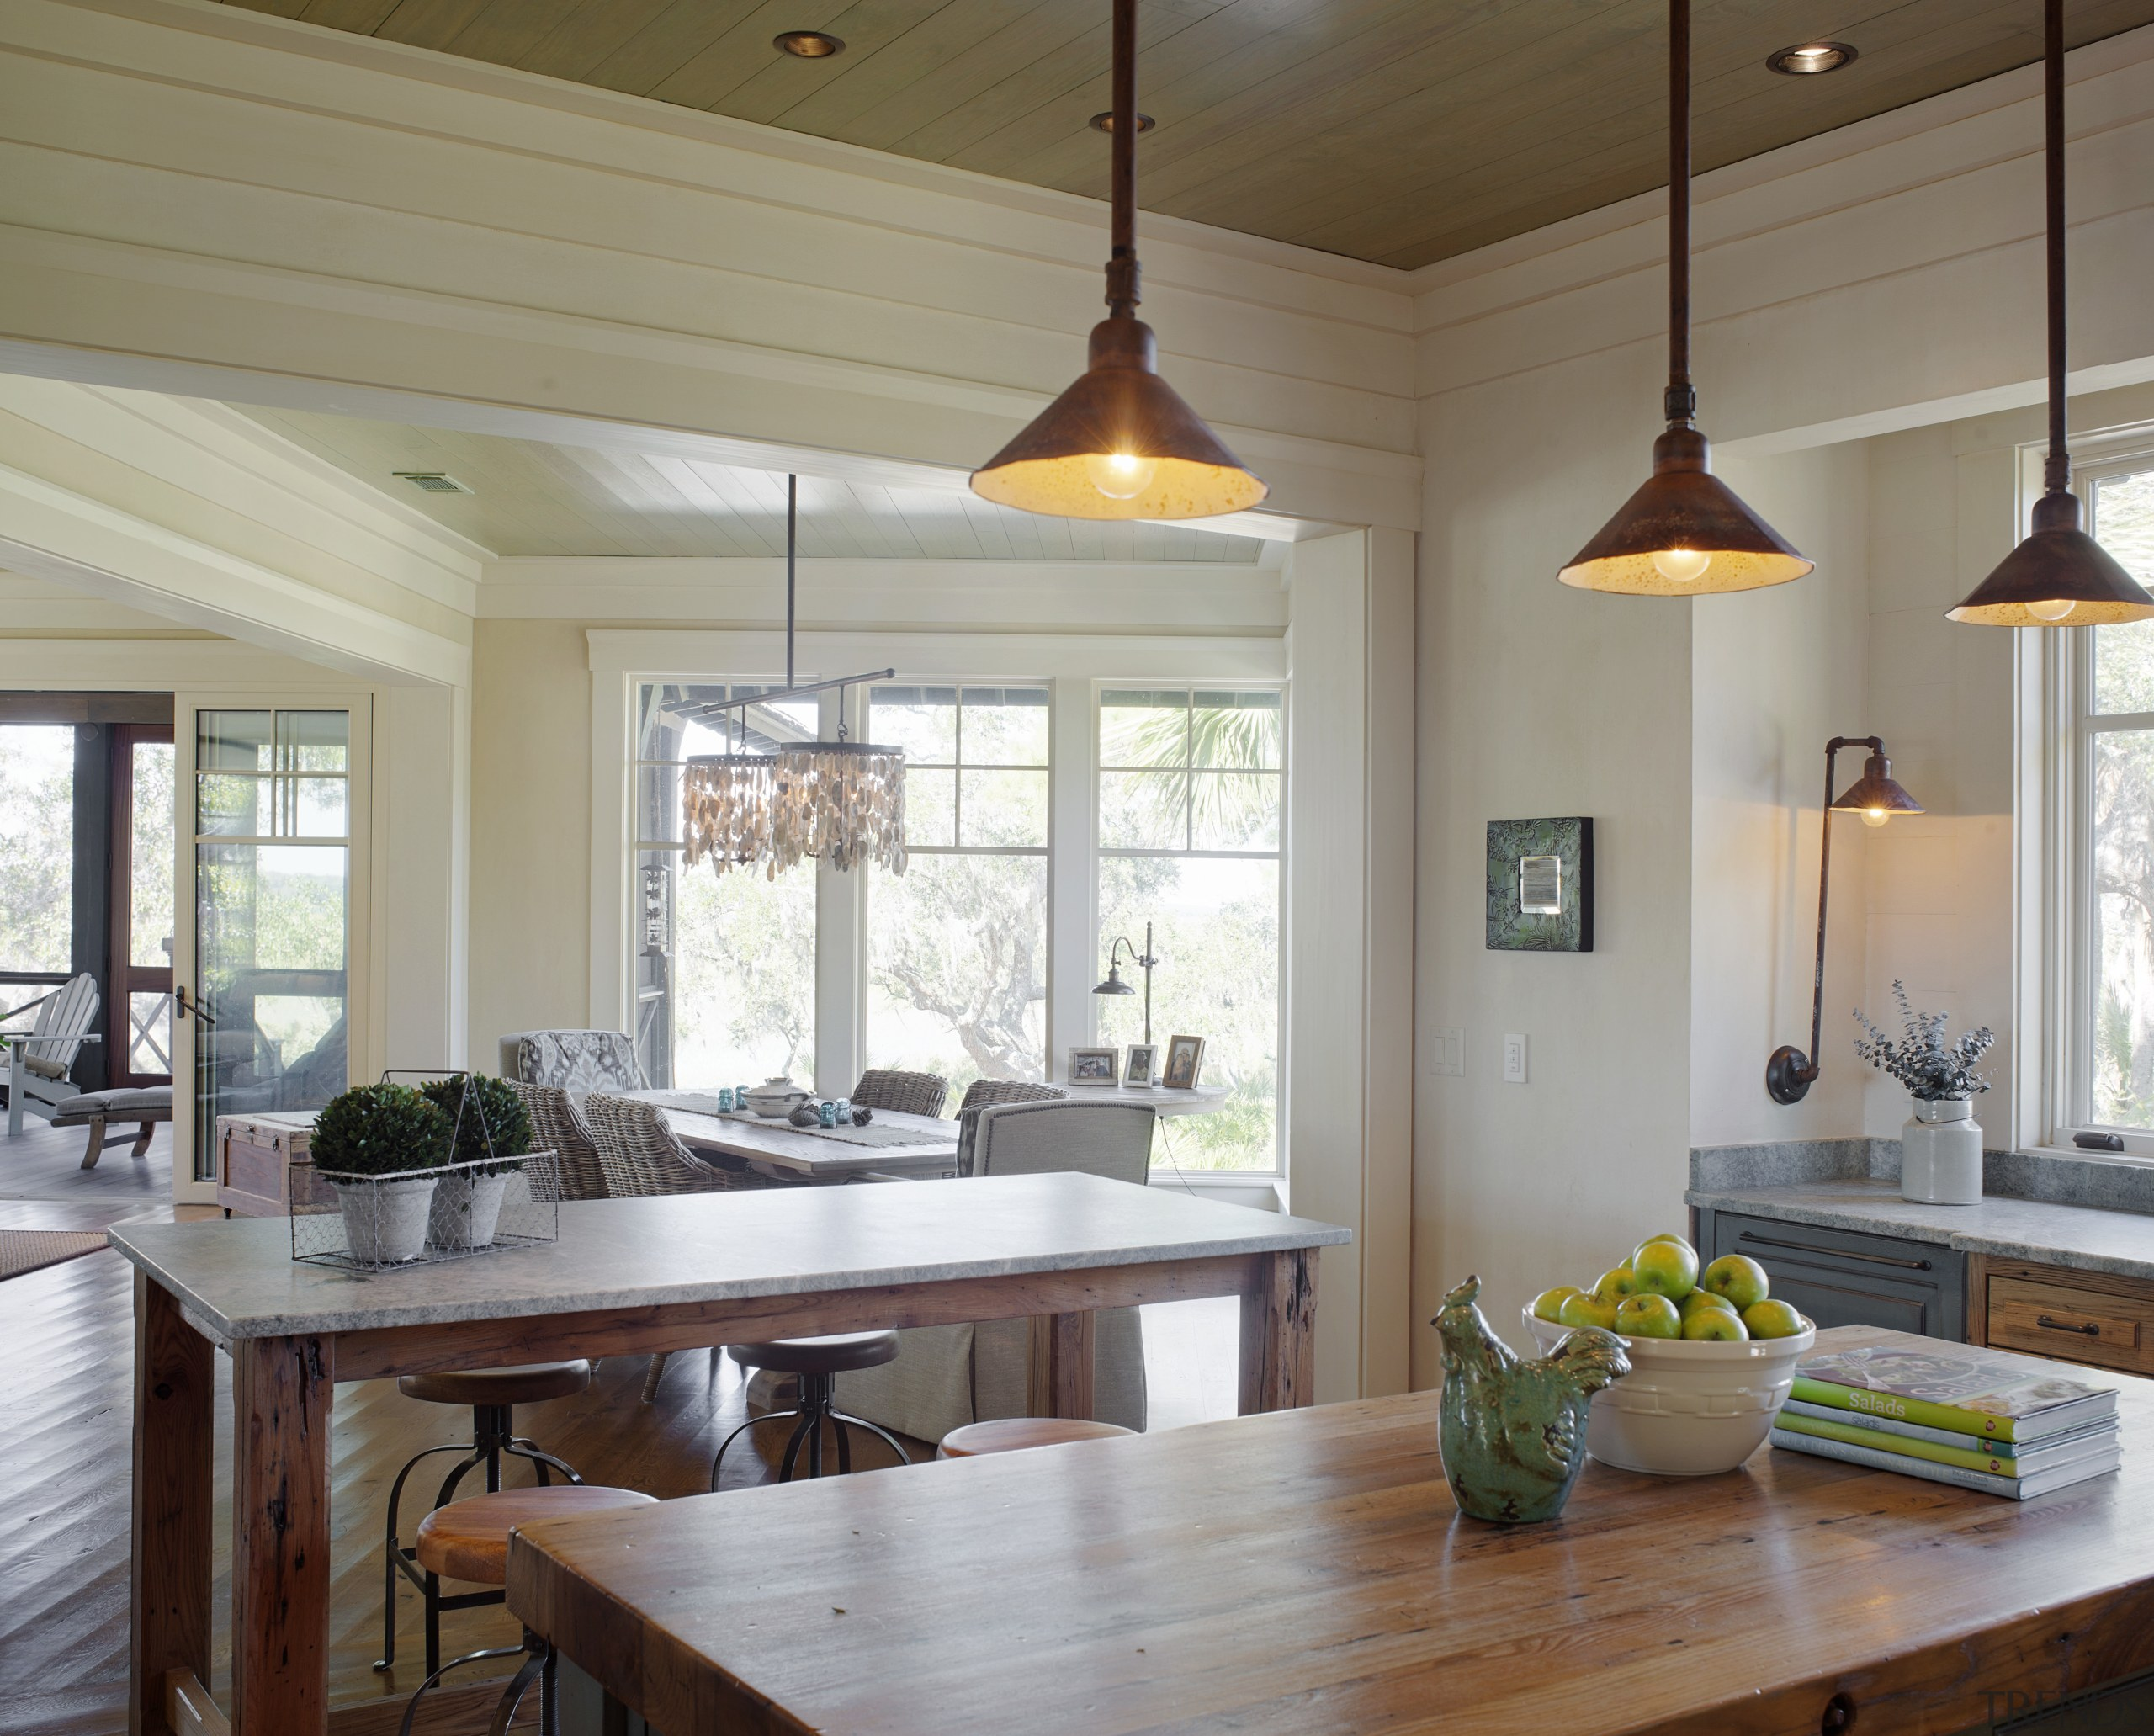 There are views through the house to the ceiling, countertop, dining room, home, interior design, kitchen, living room, real estate, room, table, window, gray